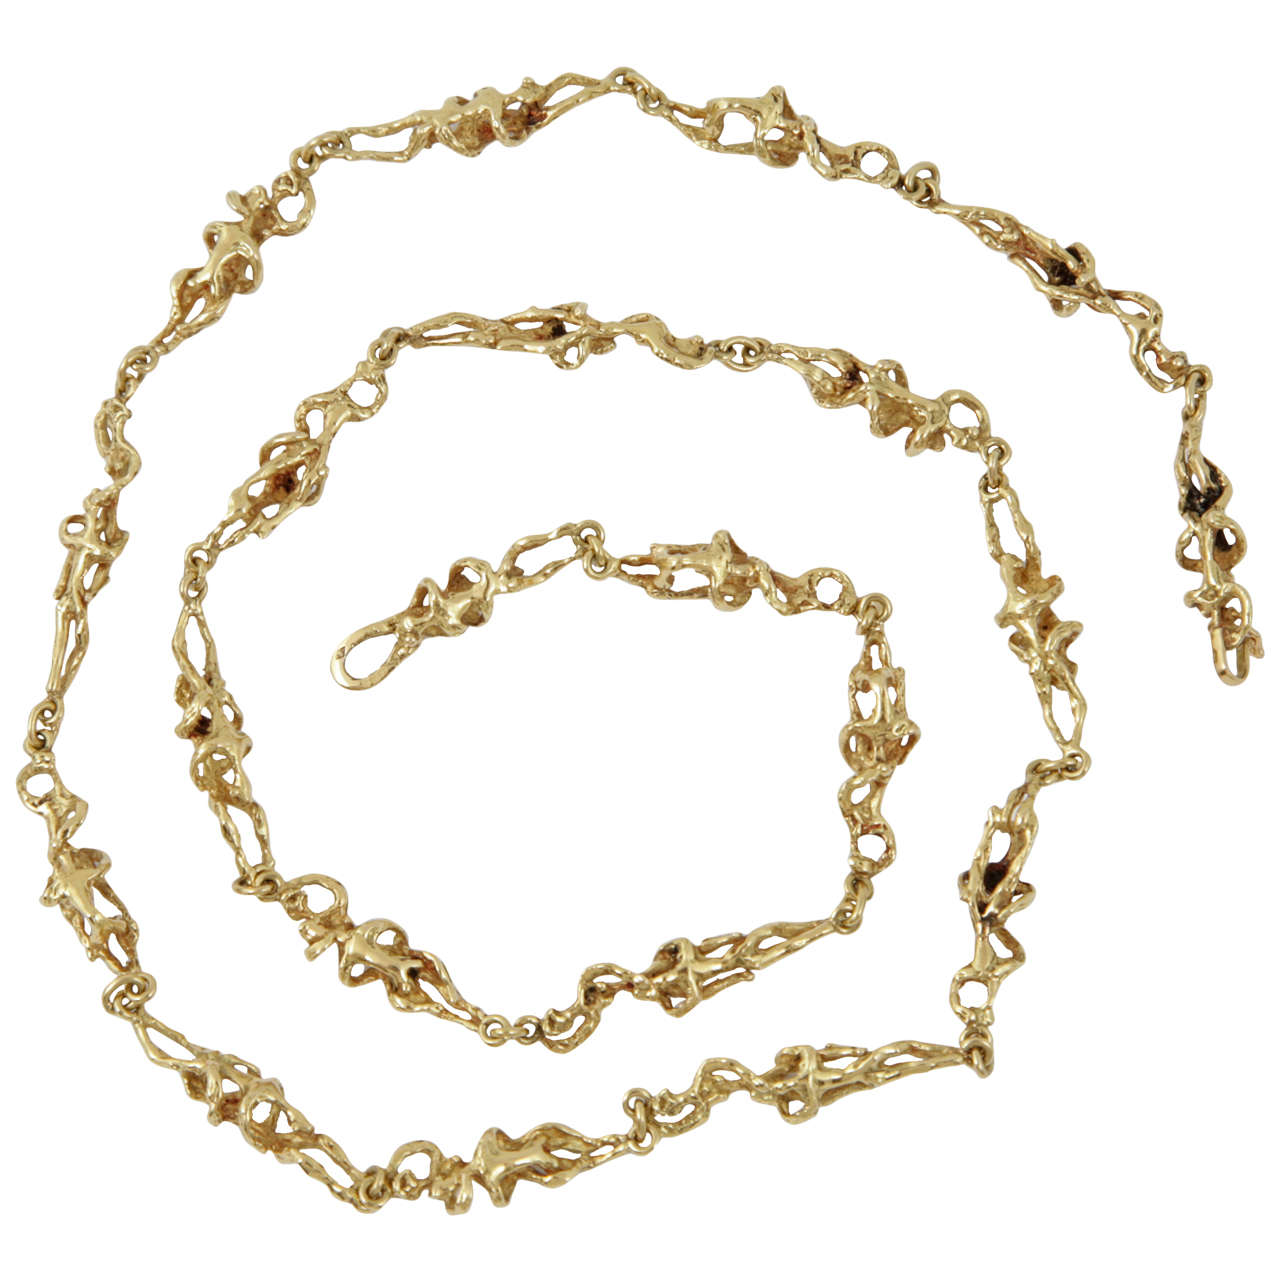 1970s Erotic French Gold Necklace